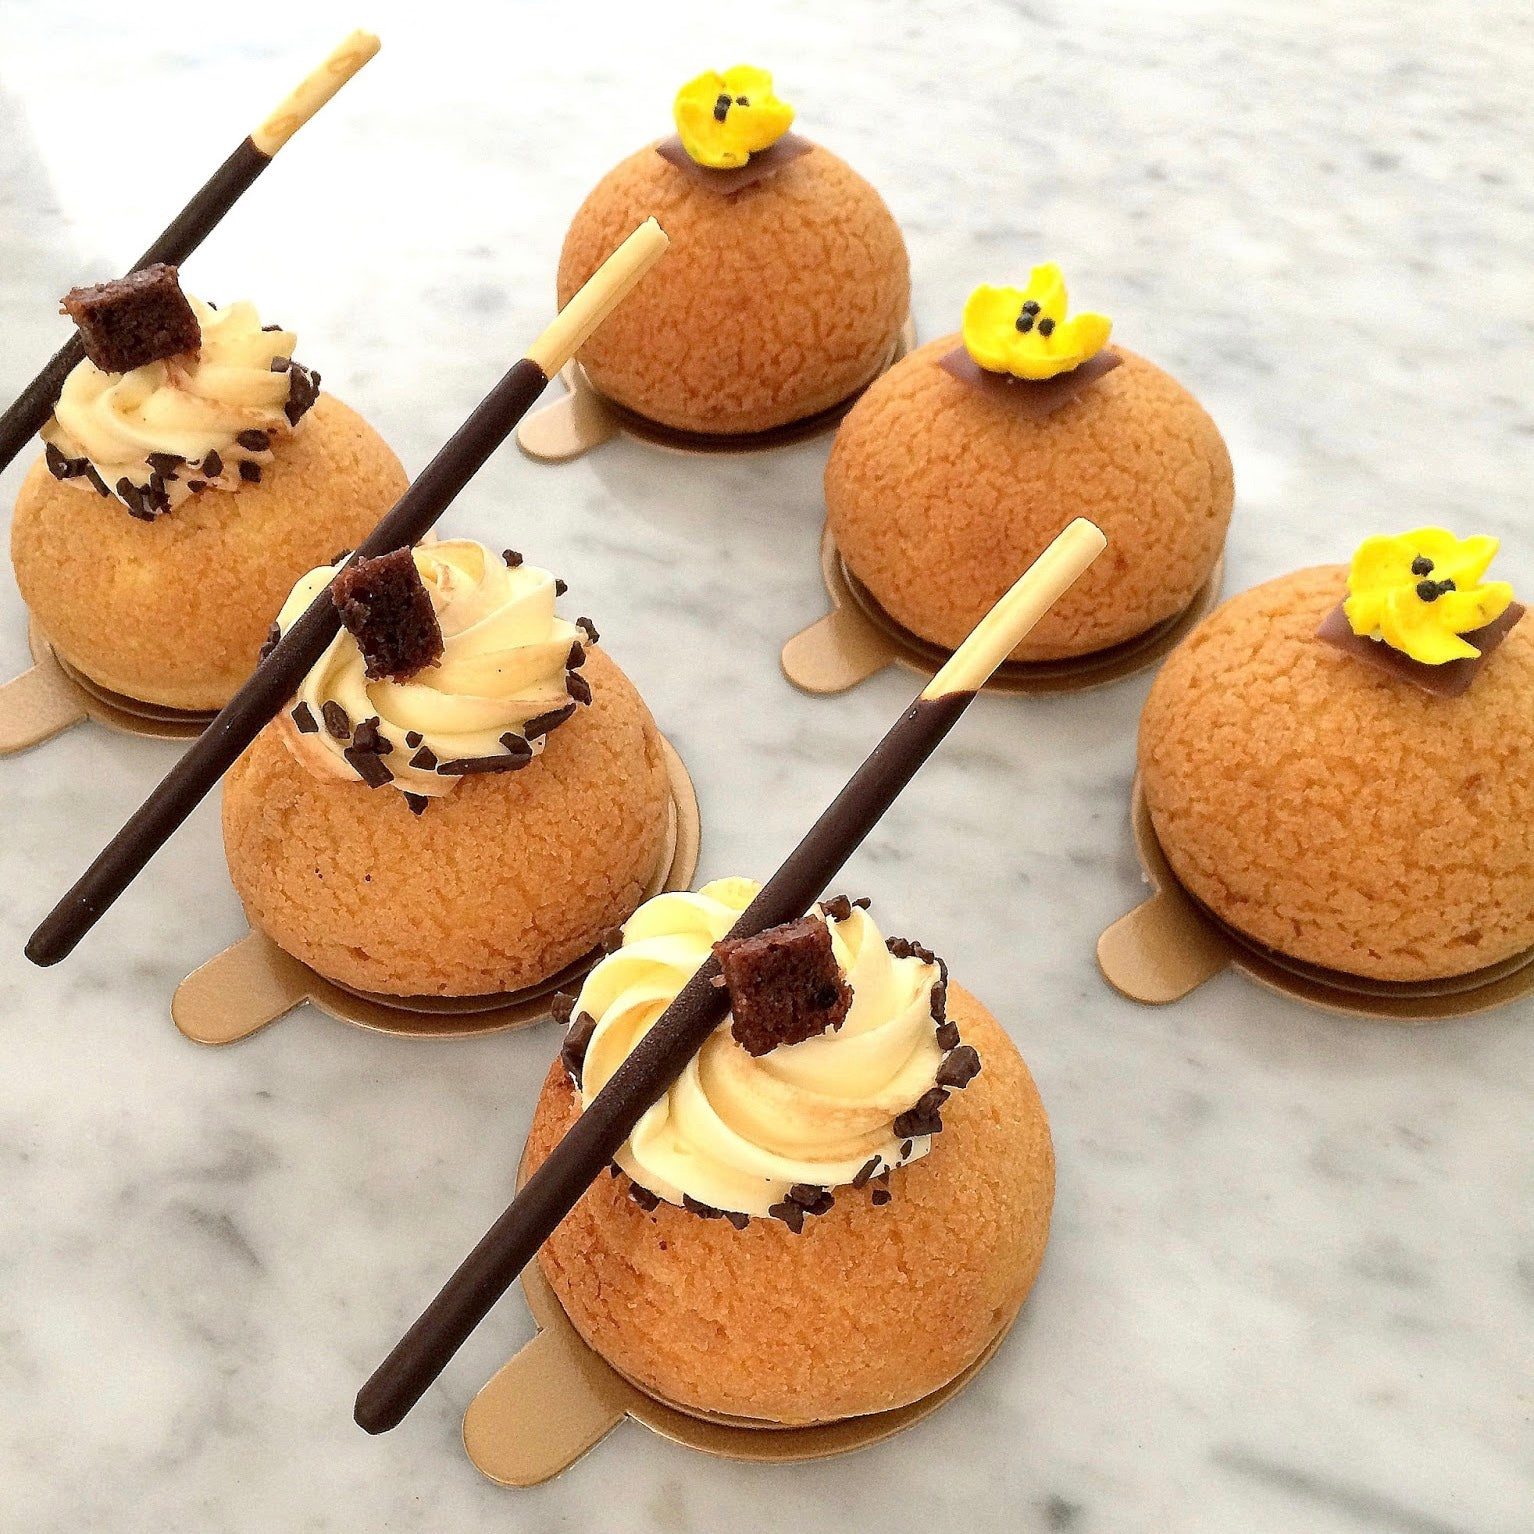 Tasty Choux Pastry (March 24)